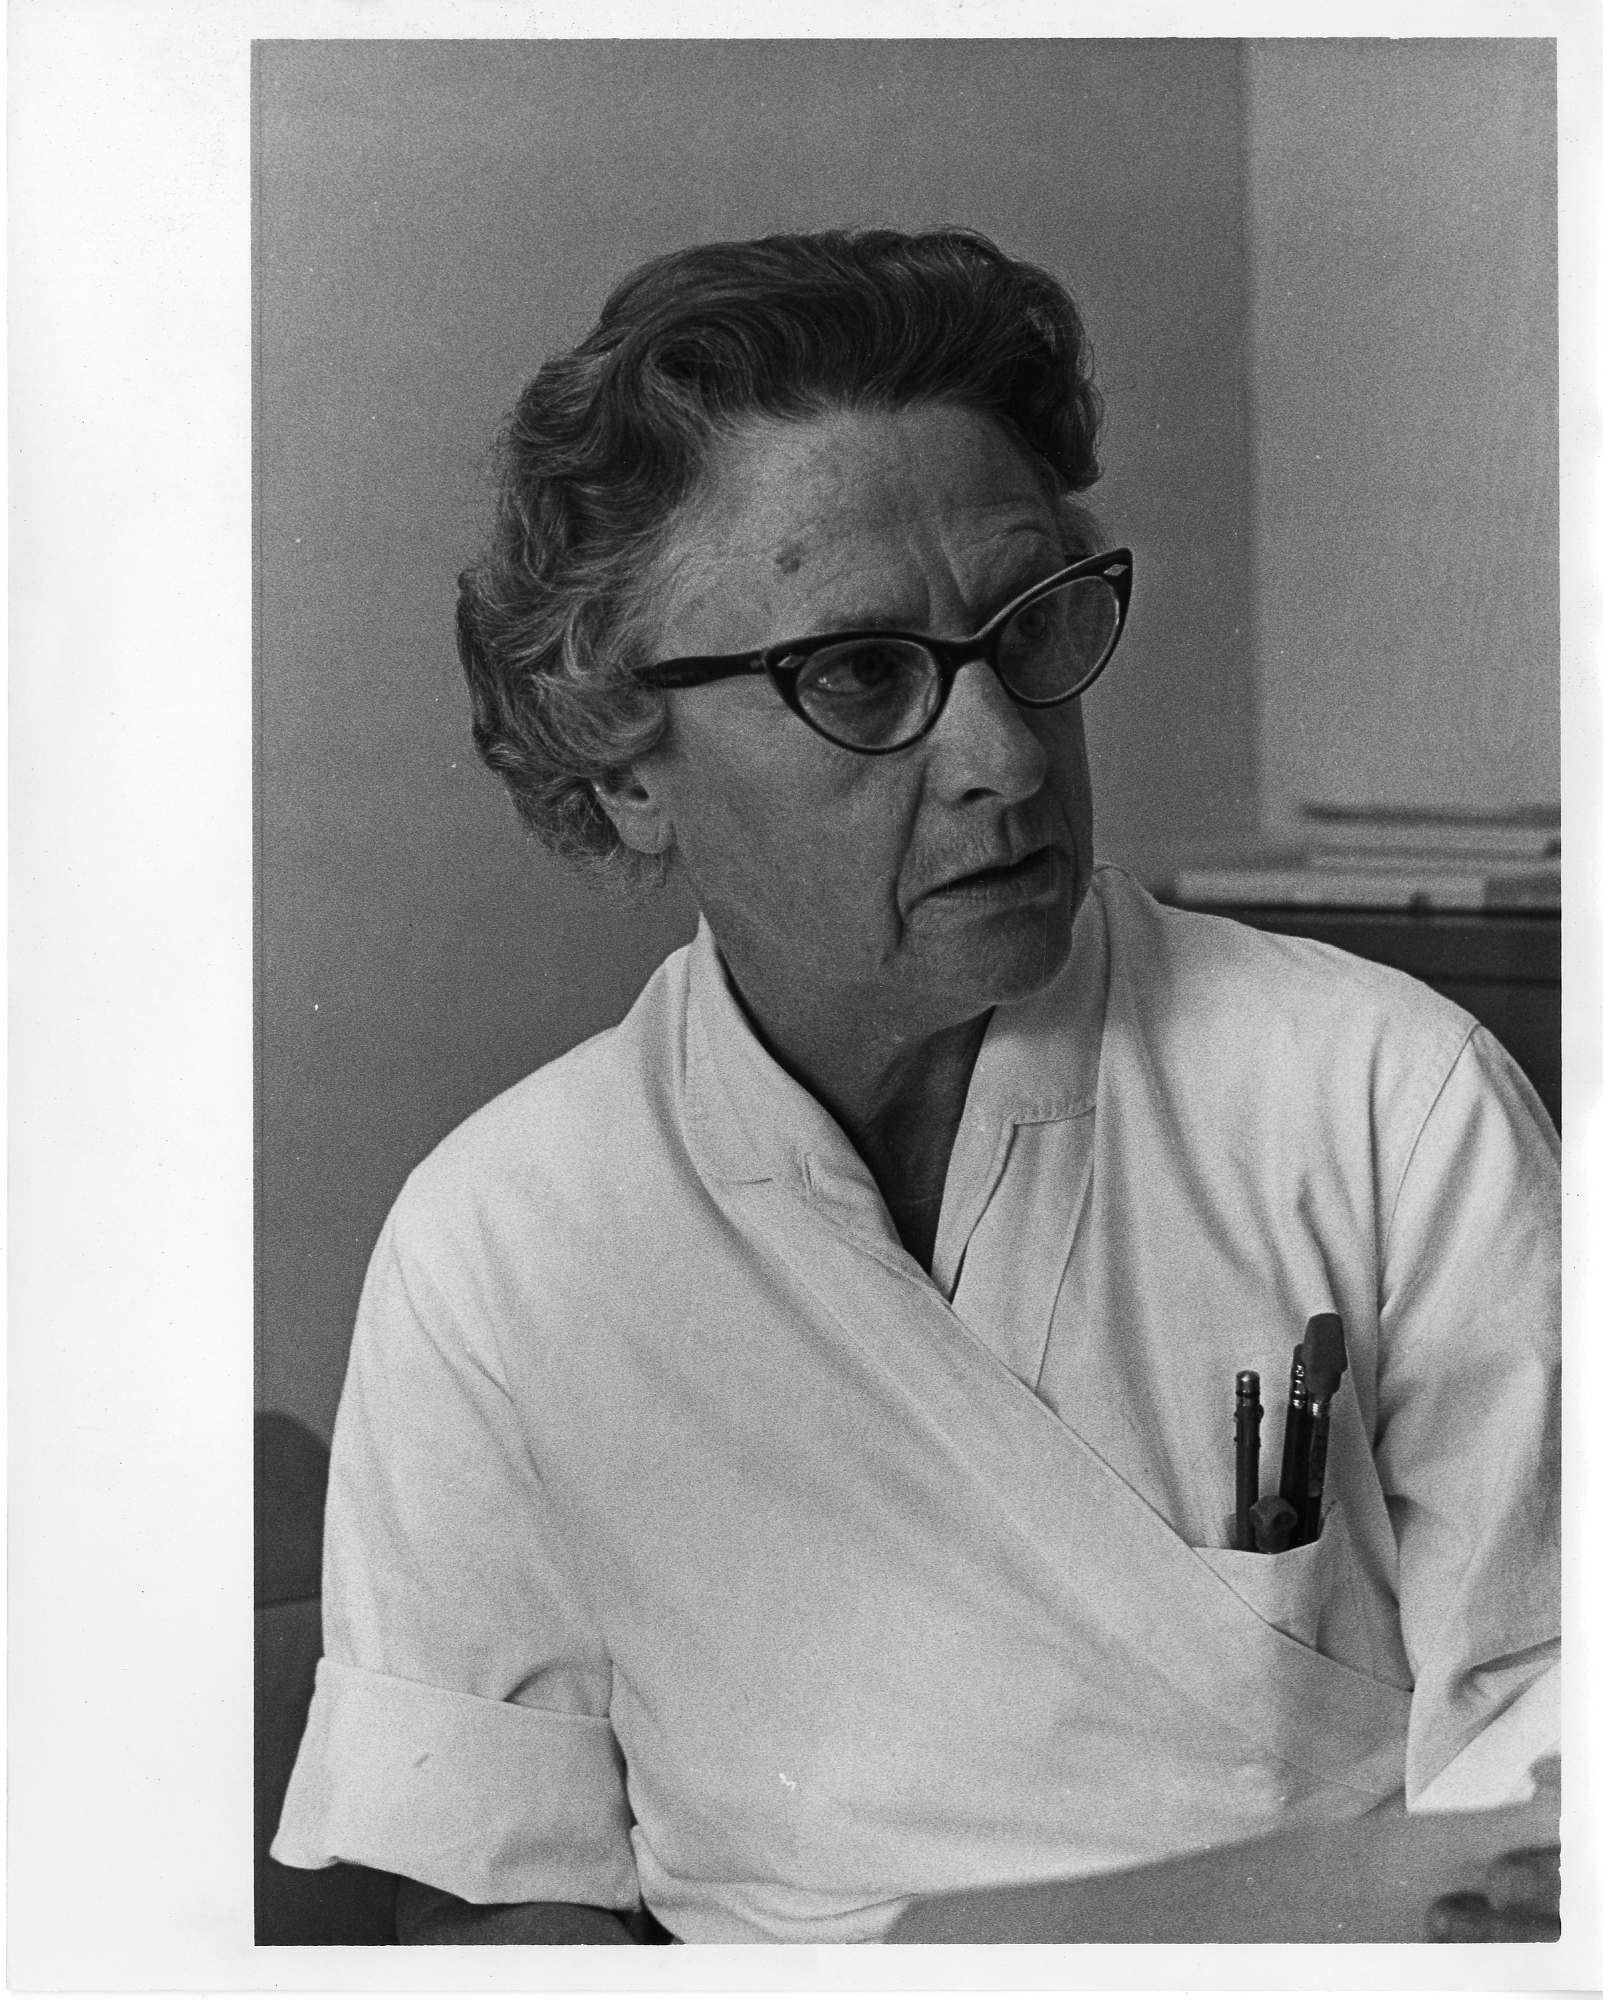 Black and white portrait of Geneticist Katherine Pattee Hummel.